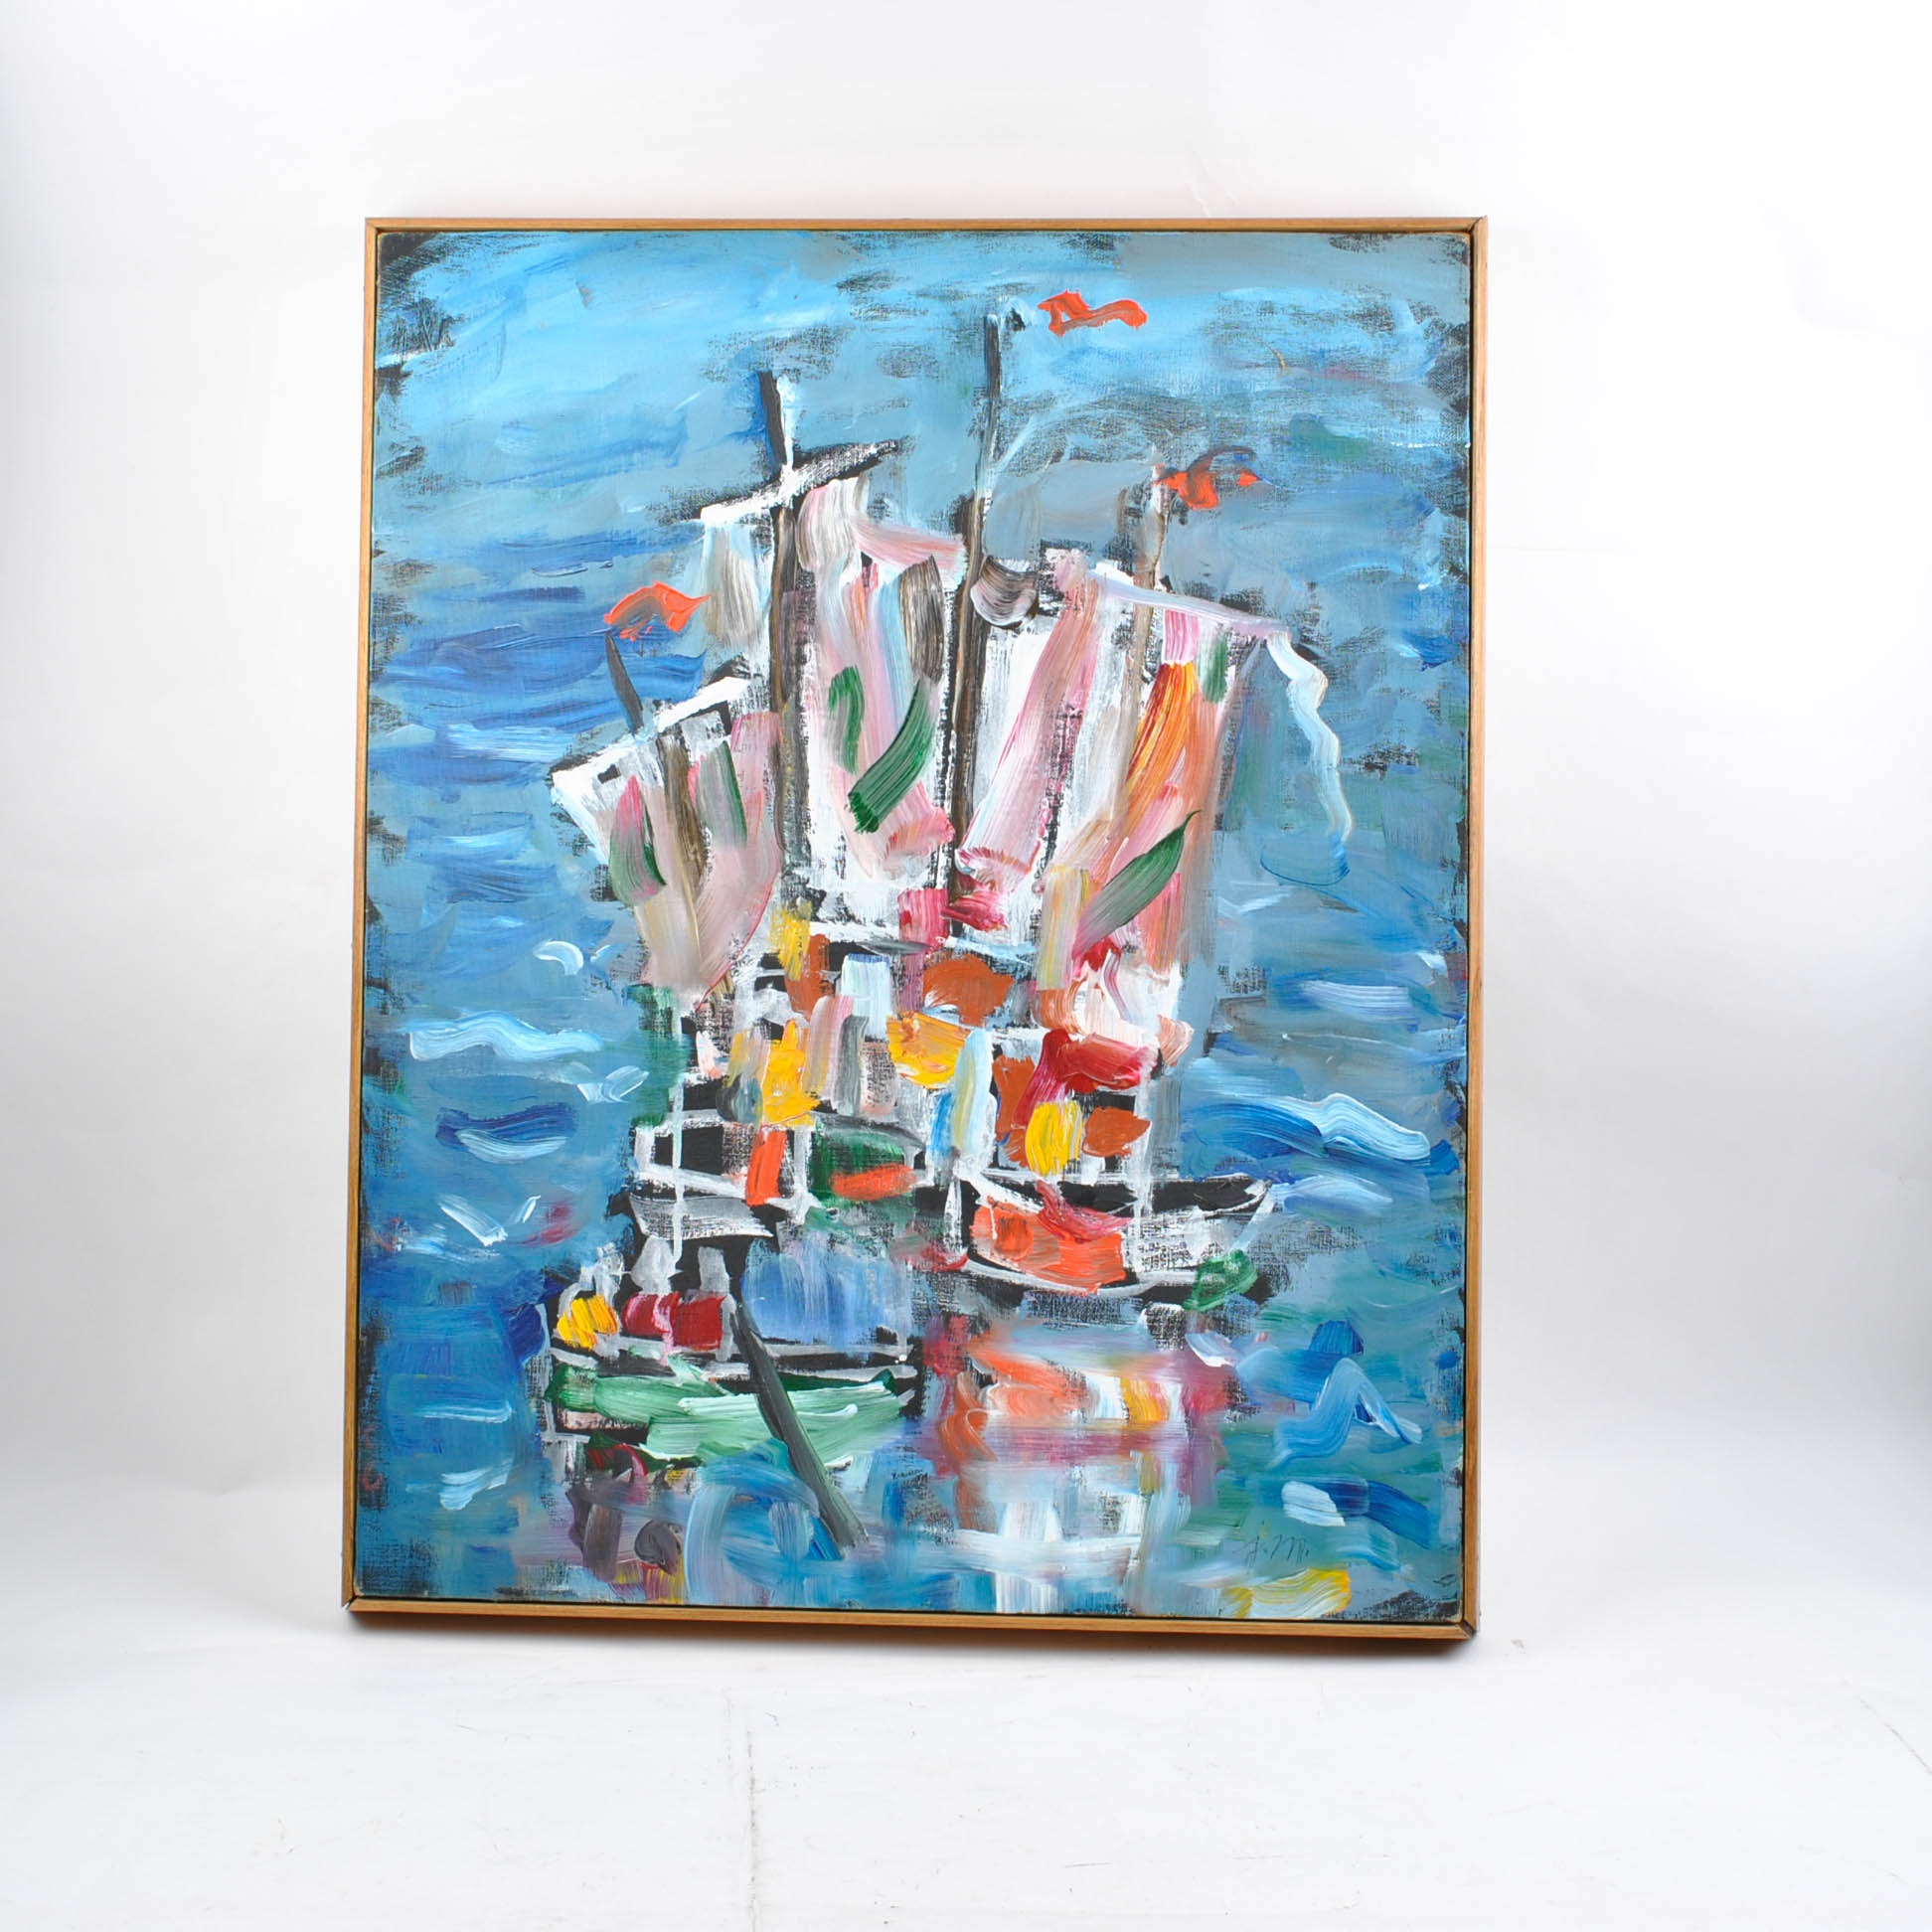 Abstract Oil Painting of Boat by Josephine Mahaffey